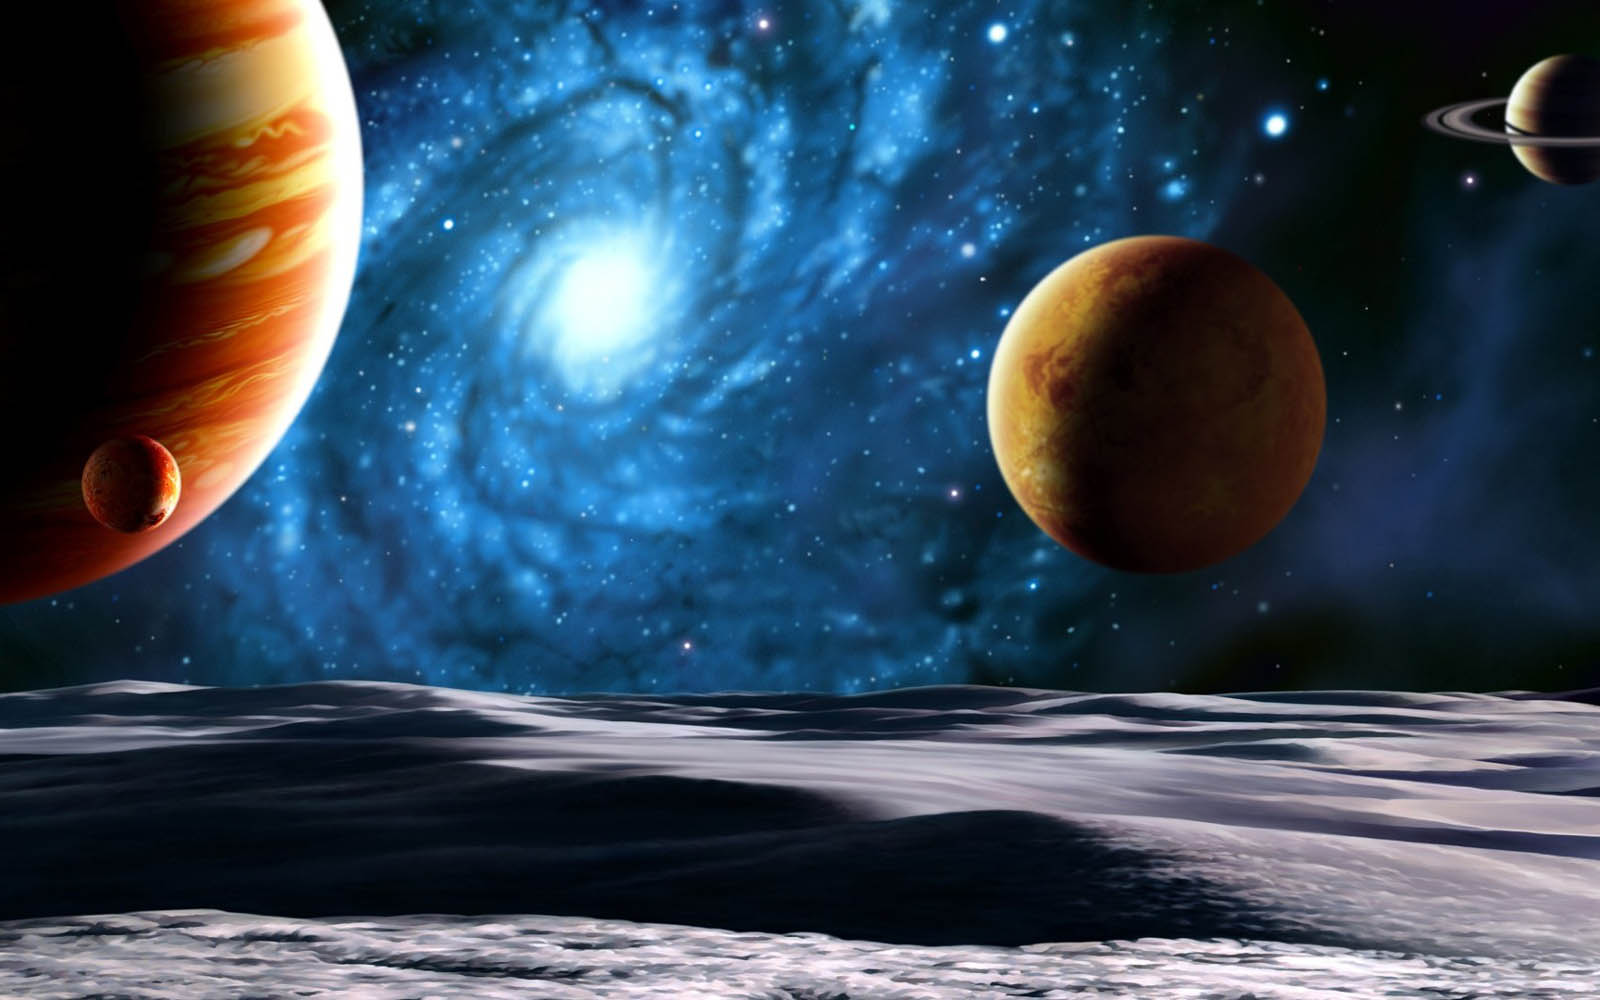 Wallpaper: Planets In Space Wallpapers